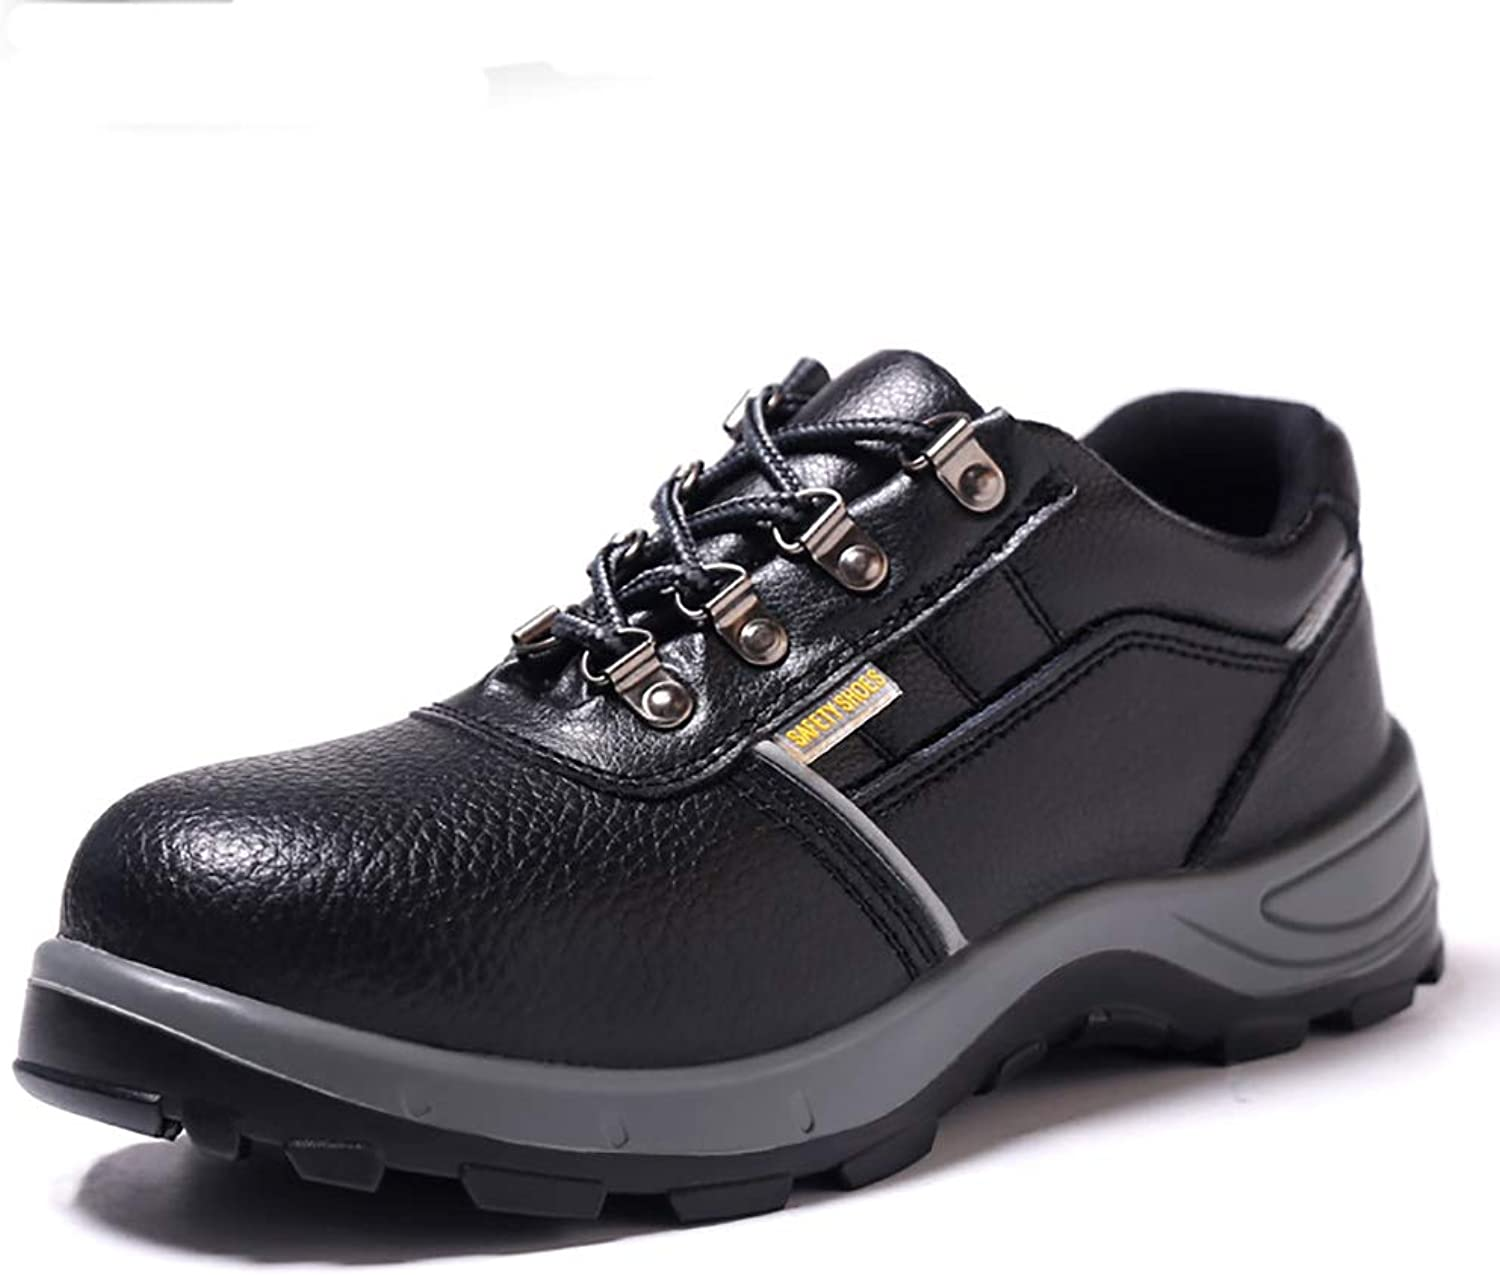 ZYFXZ safety shoes Men's full leather work shoes, anti-smashing lightweight steel toe cap work shoes work boots (Size   38)